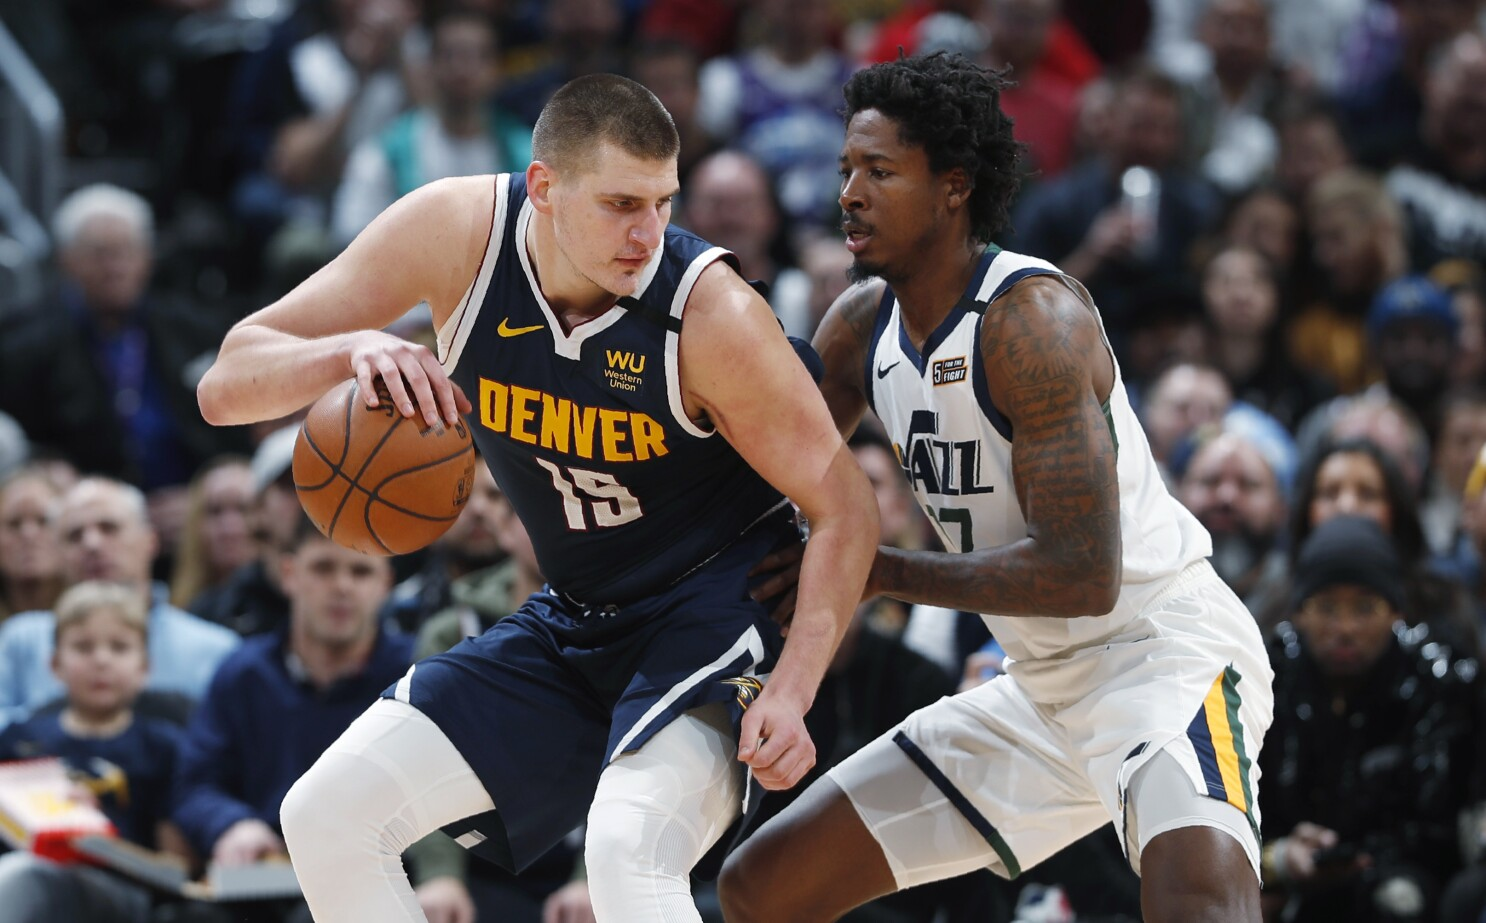 Nikola Jokic carries short-handed Nuggets past Jazz 106-100 - The ...